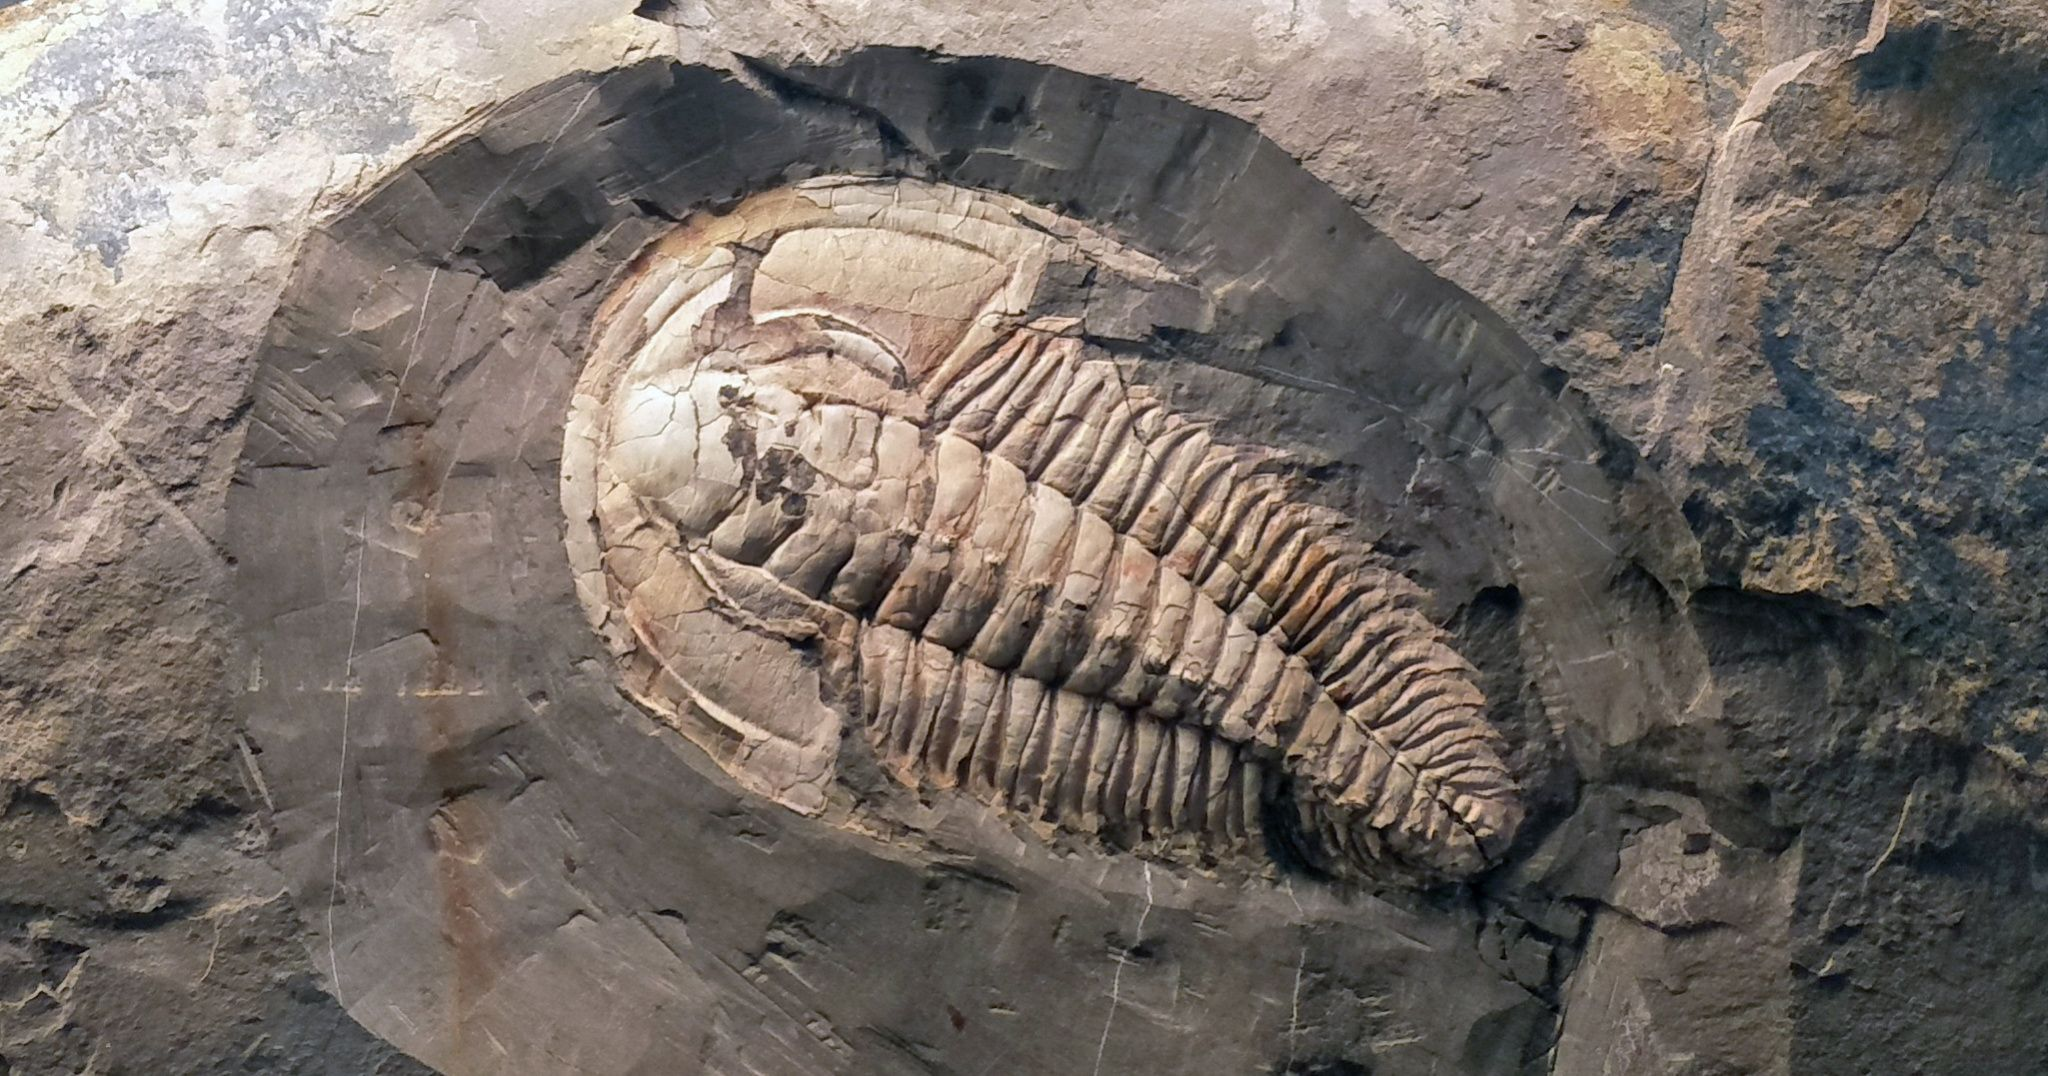 Fossil Of Giant Sea Creature Discovered In South Australia